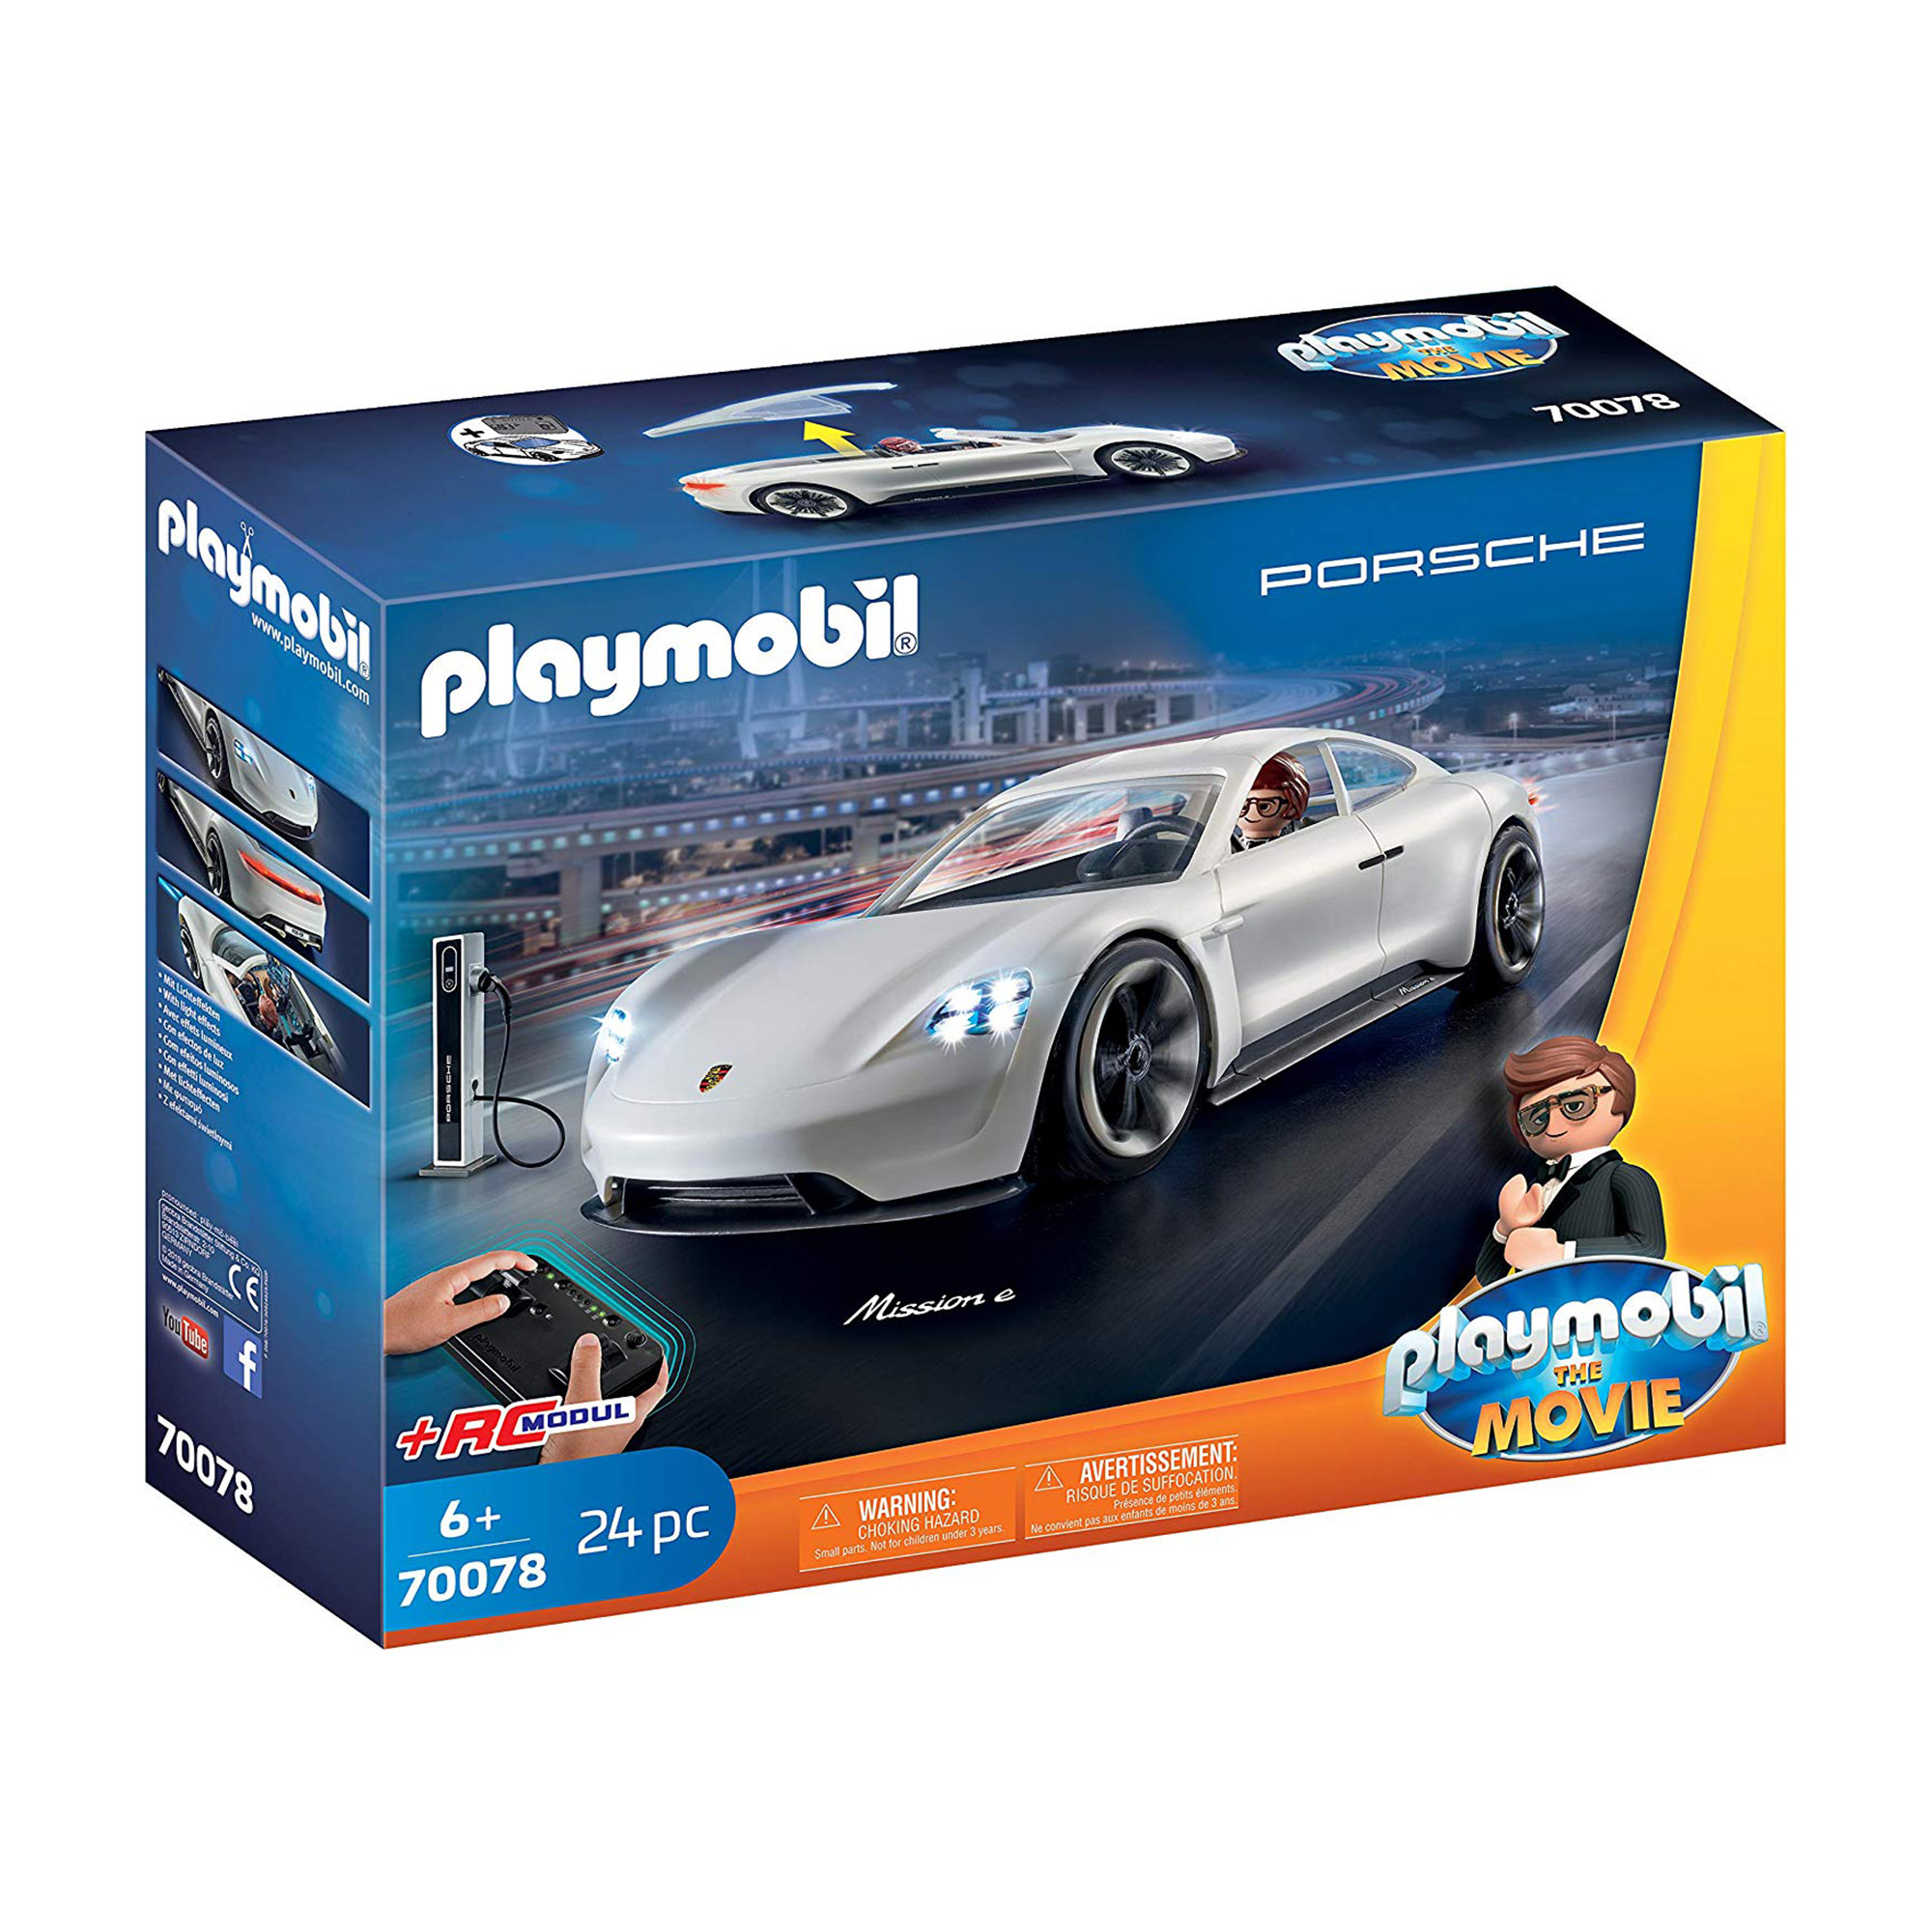 Playmobil 70078 Playmobil: THE MOVIE Rex Dashers Porsche Mission E